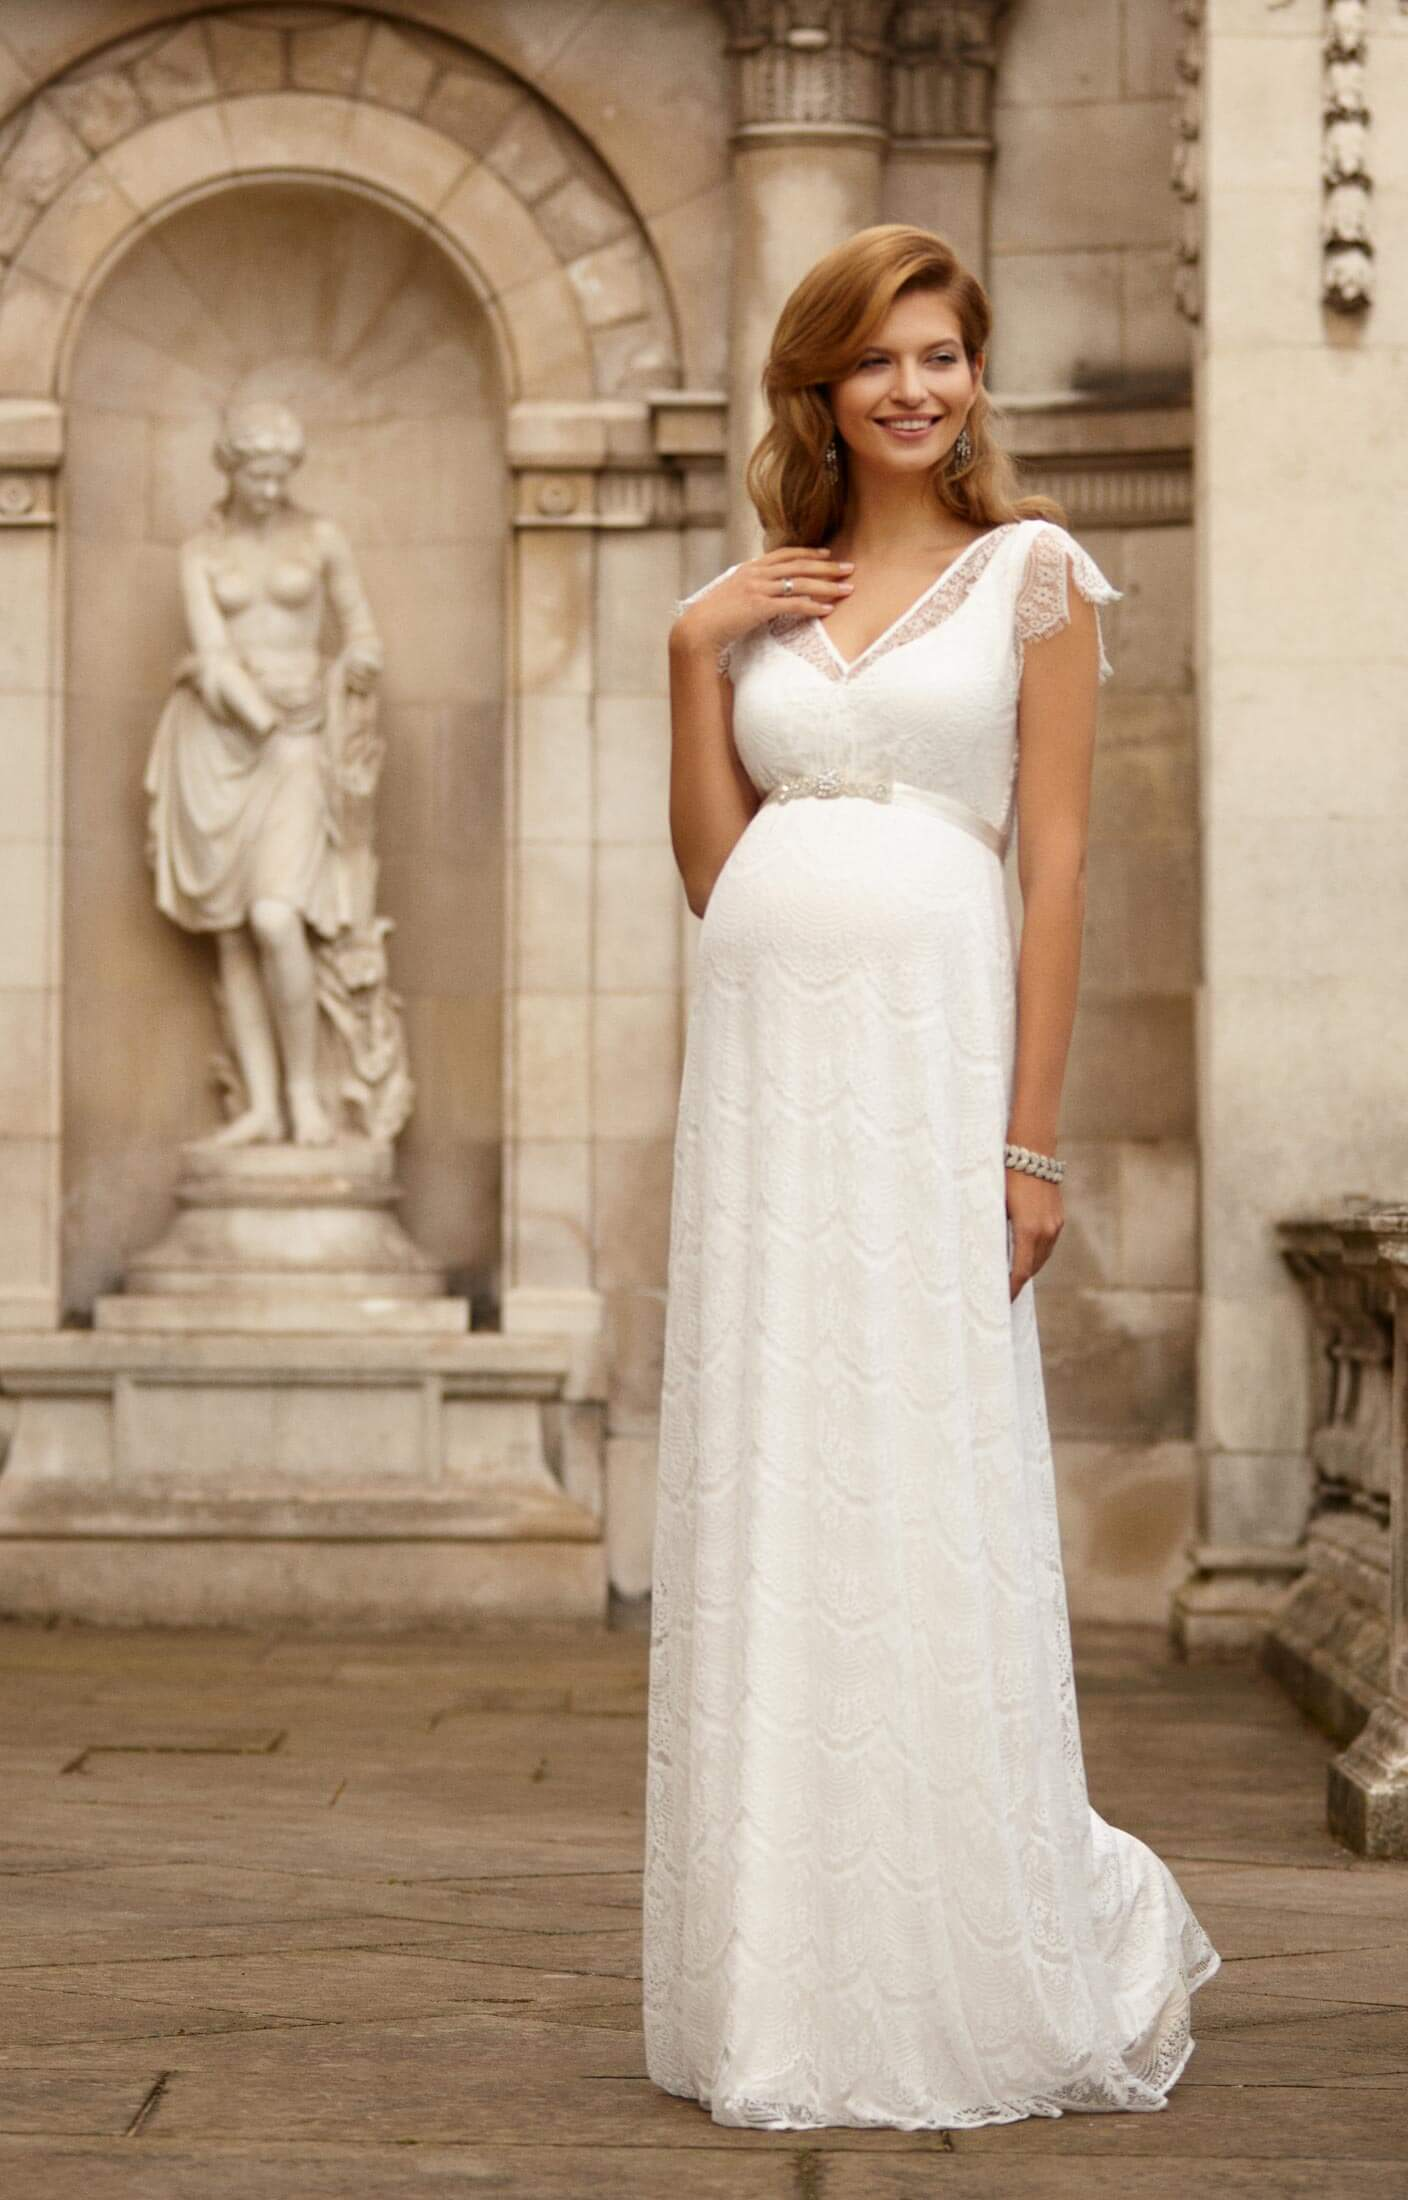 Kristin maternity wedding gown long ivory maternity for Pregnancy dress for wedding